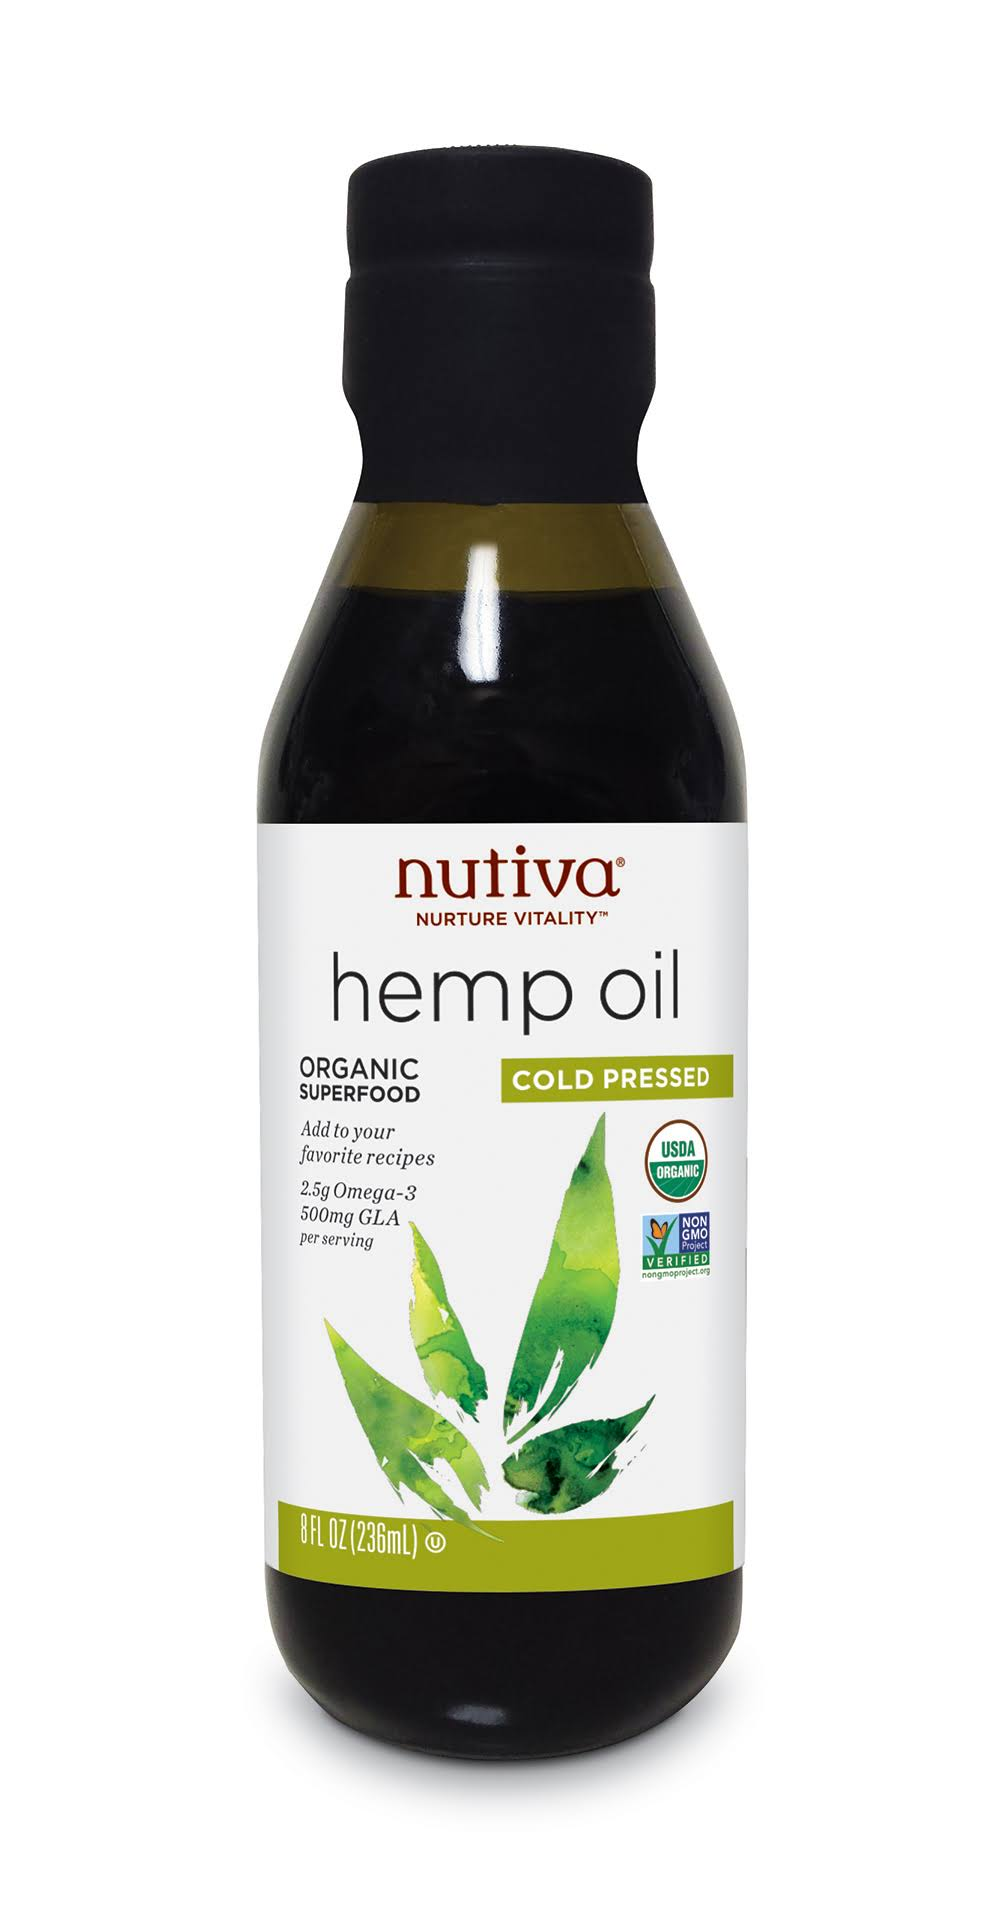 Nutiva Organic Superfood Hemp Oil - 8 fl oz bottle